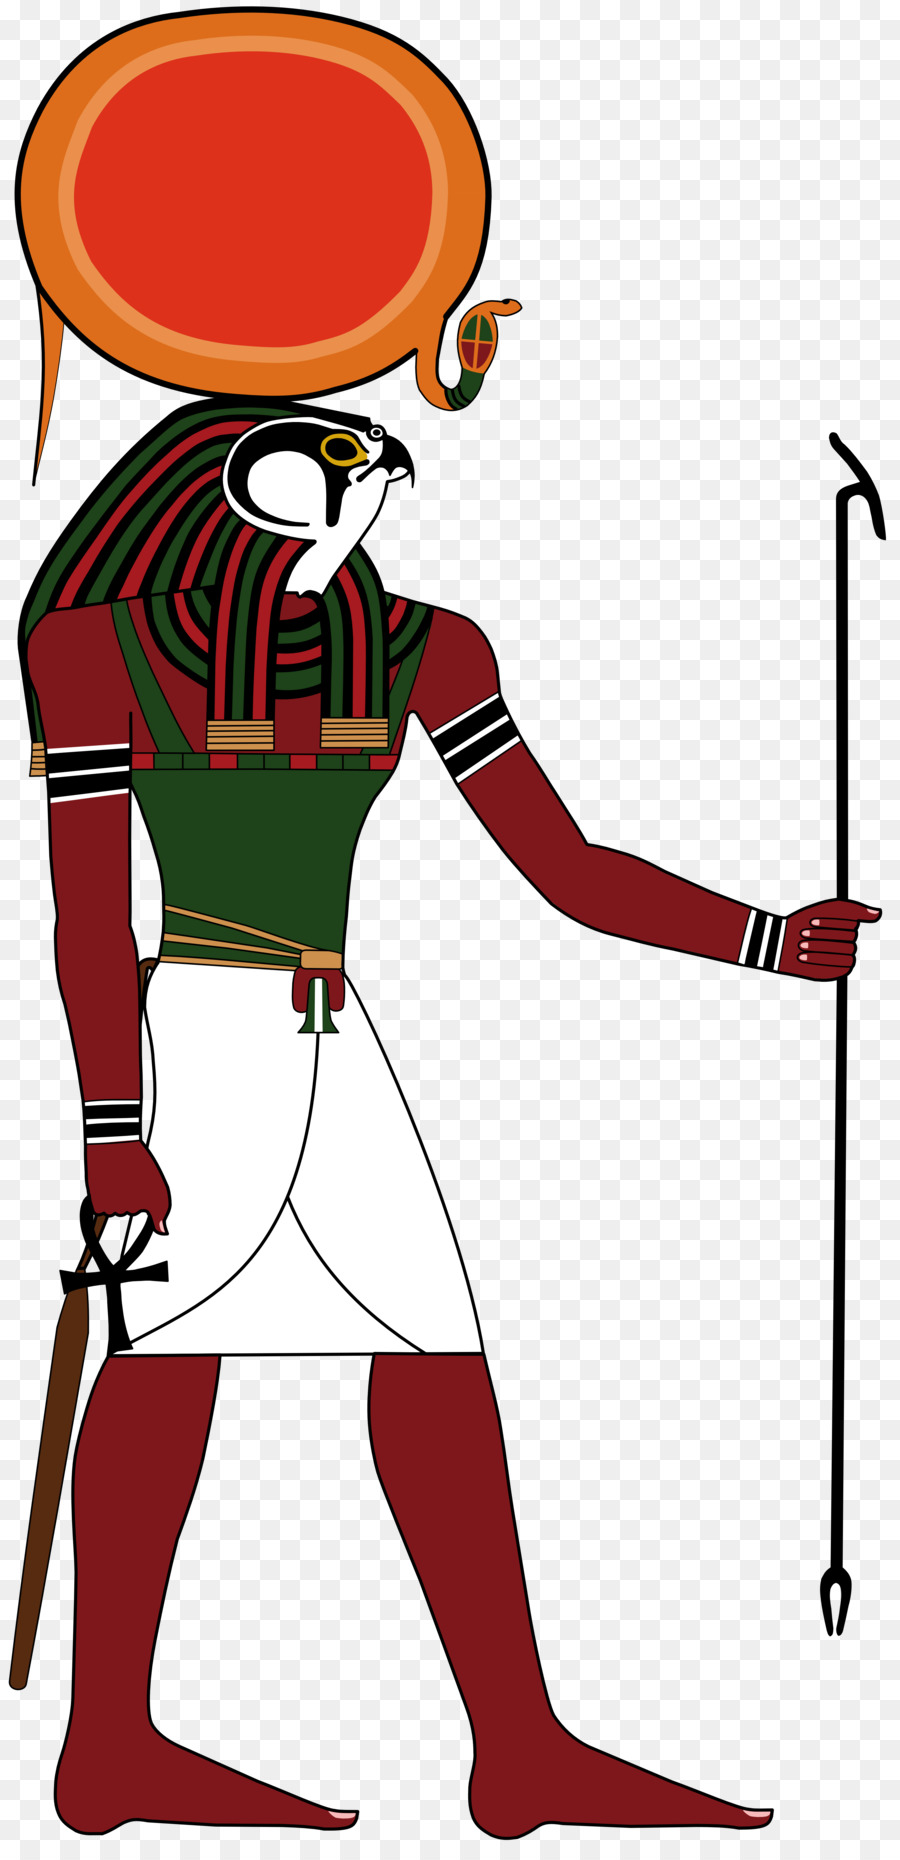 Clipart egyptian gods image download Egyptian Gods png download - 3333*6844 - Free Transparent Ancient ... image download